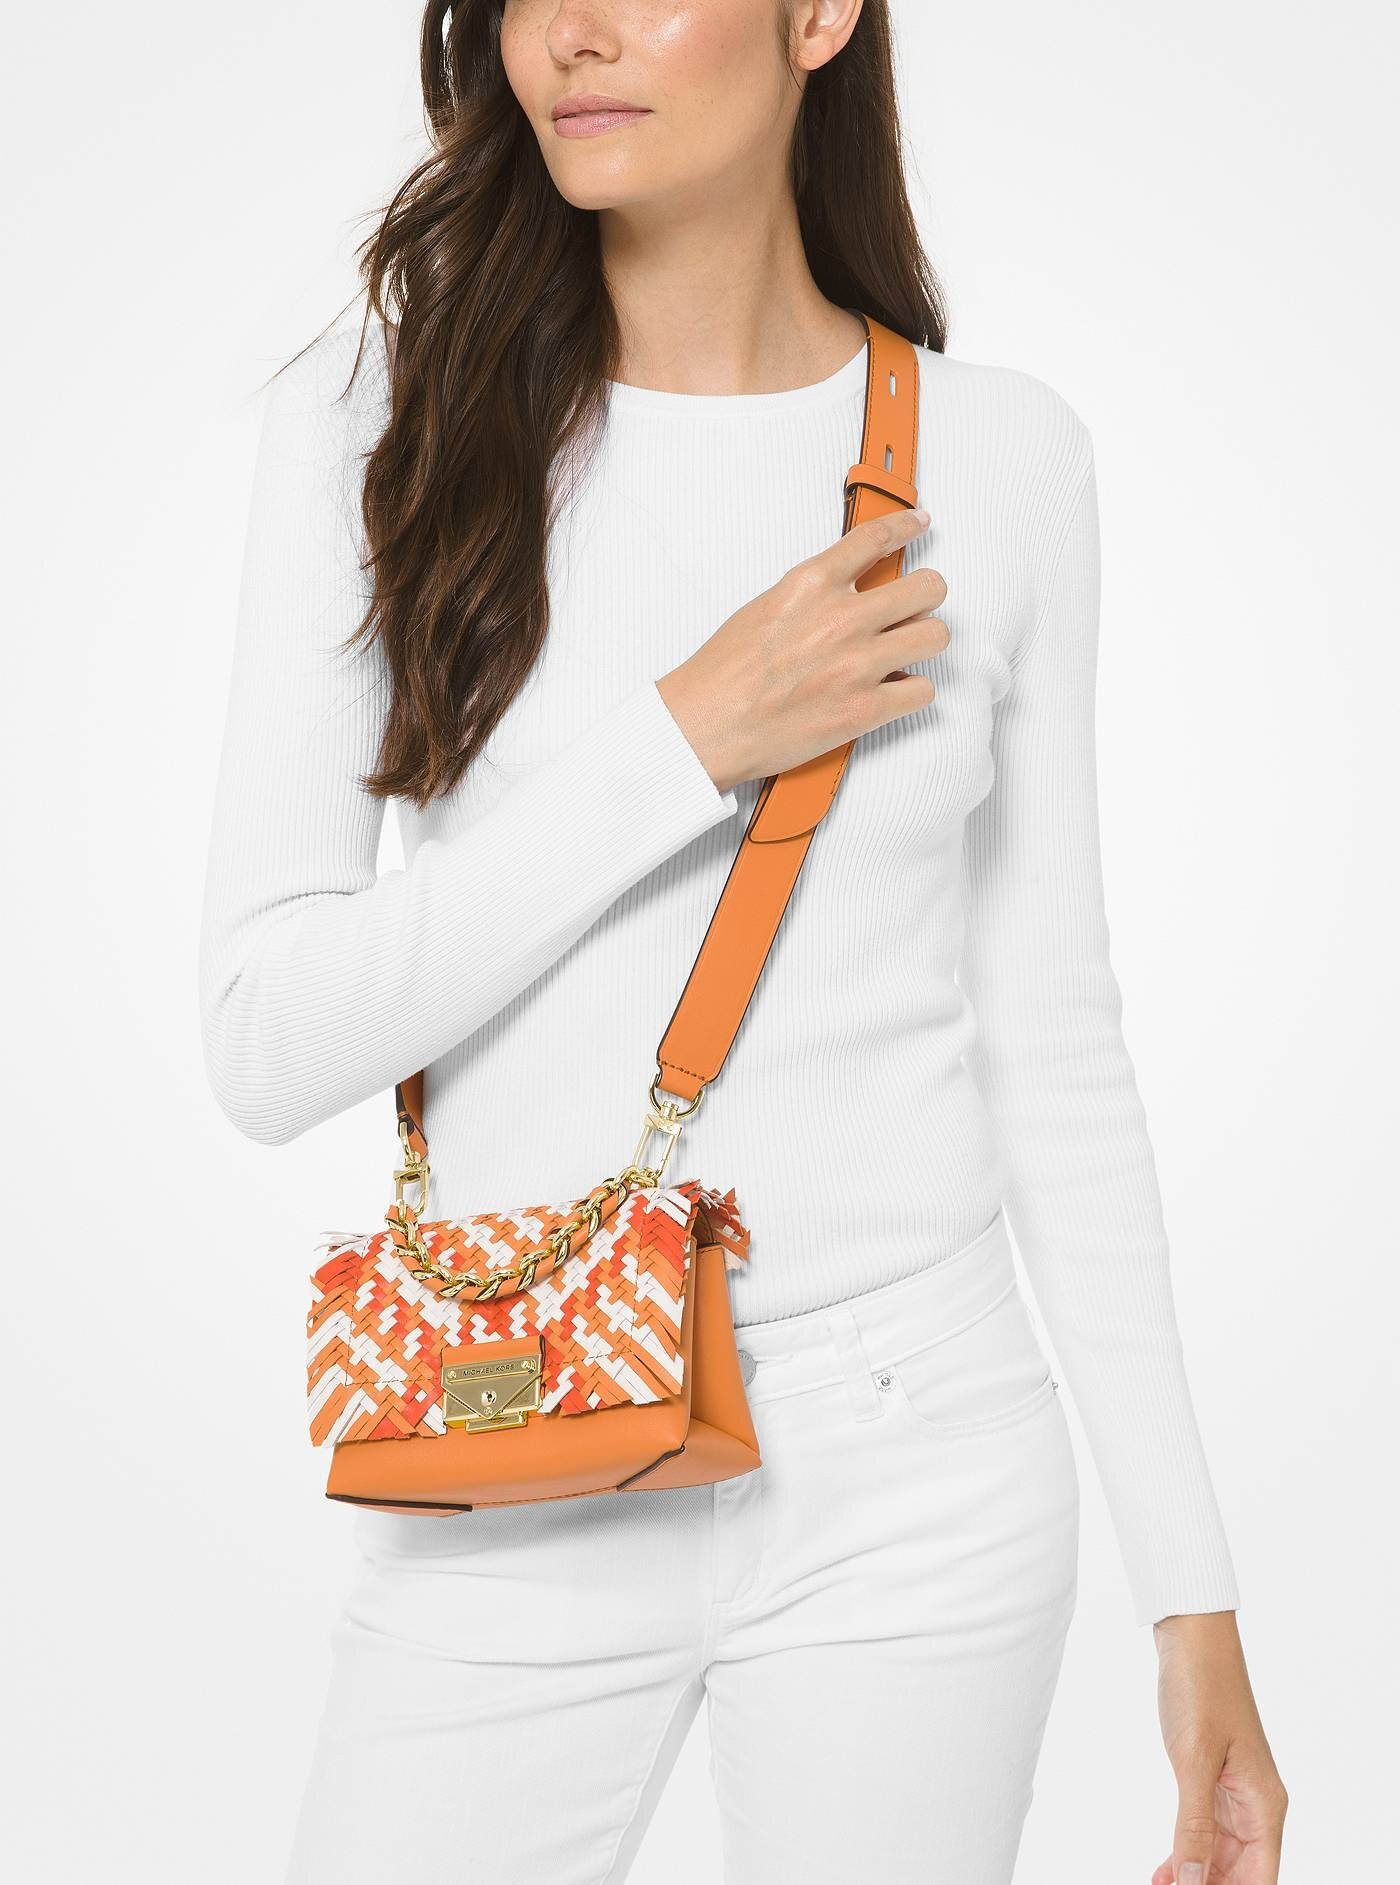 Cece Extra-Small Color-Block Woven Leather Crossbody Bag